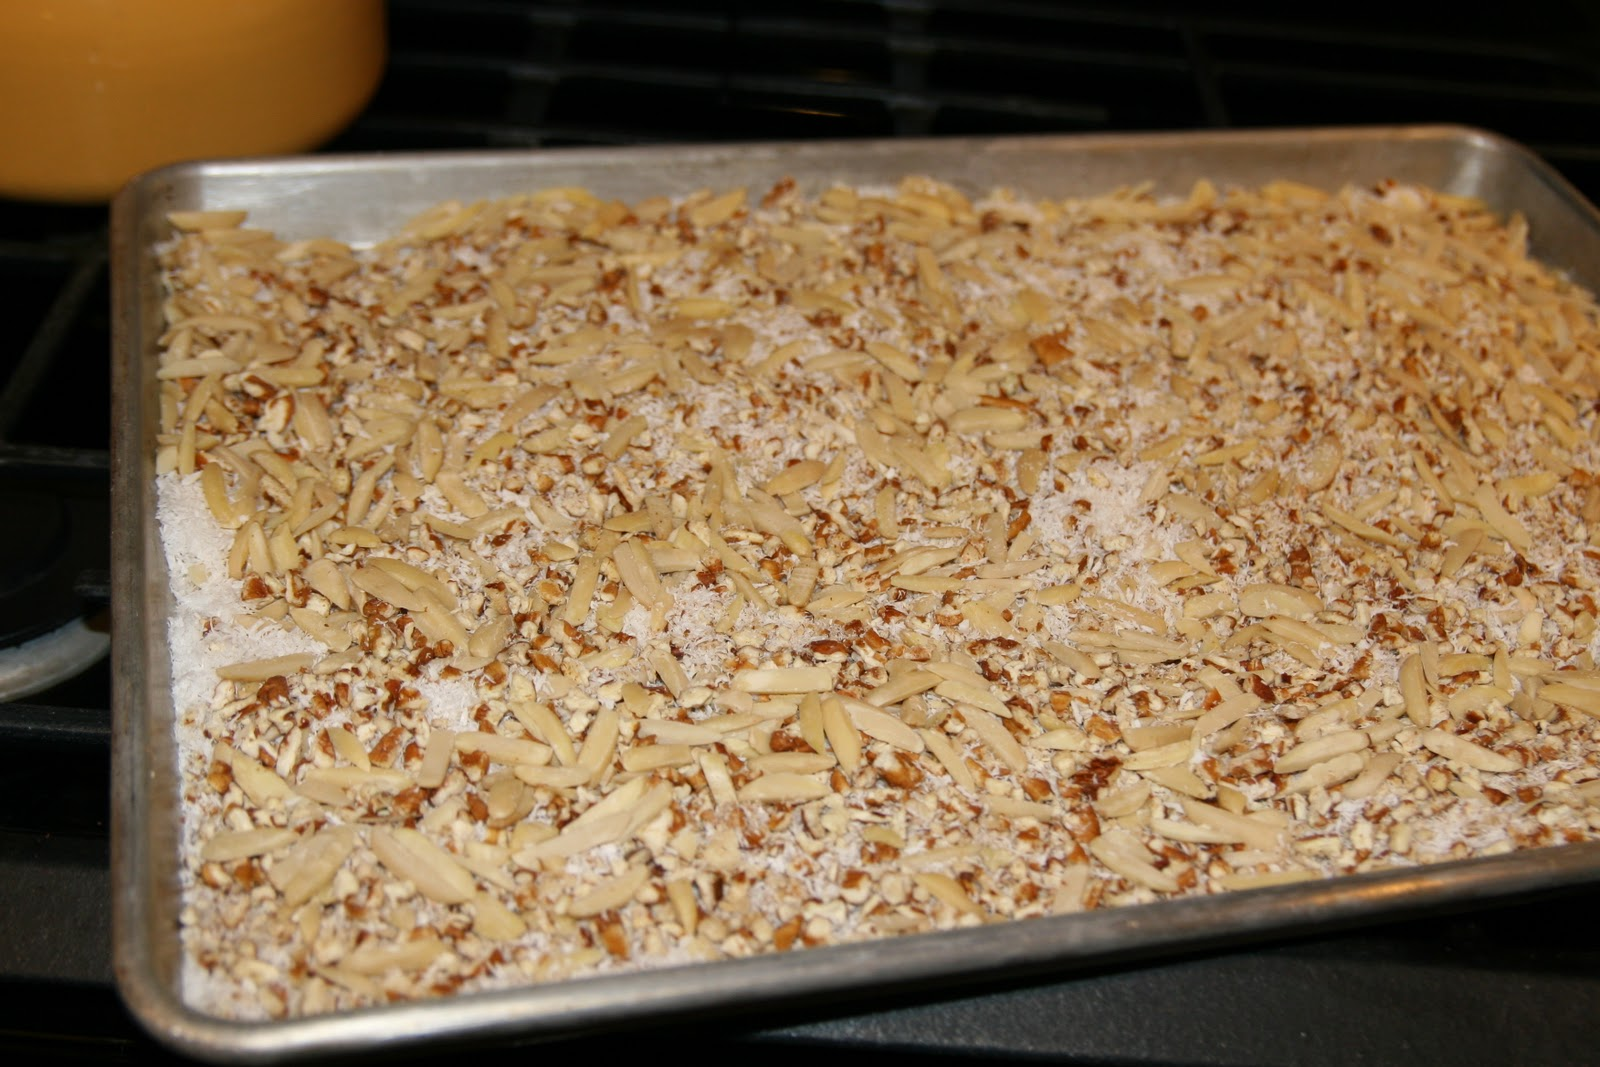 ... power bars, opt for an 8 by 8-inch pan; for thinner bars, use a 9 by